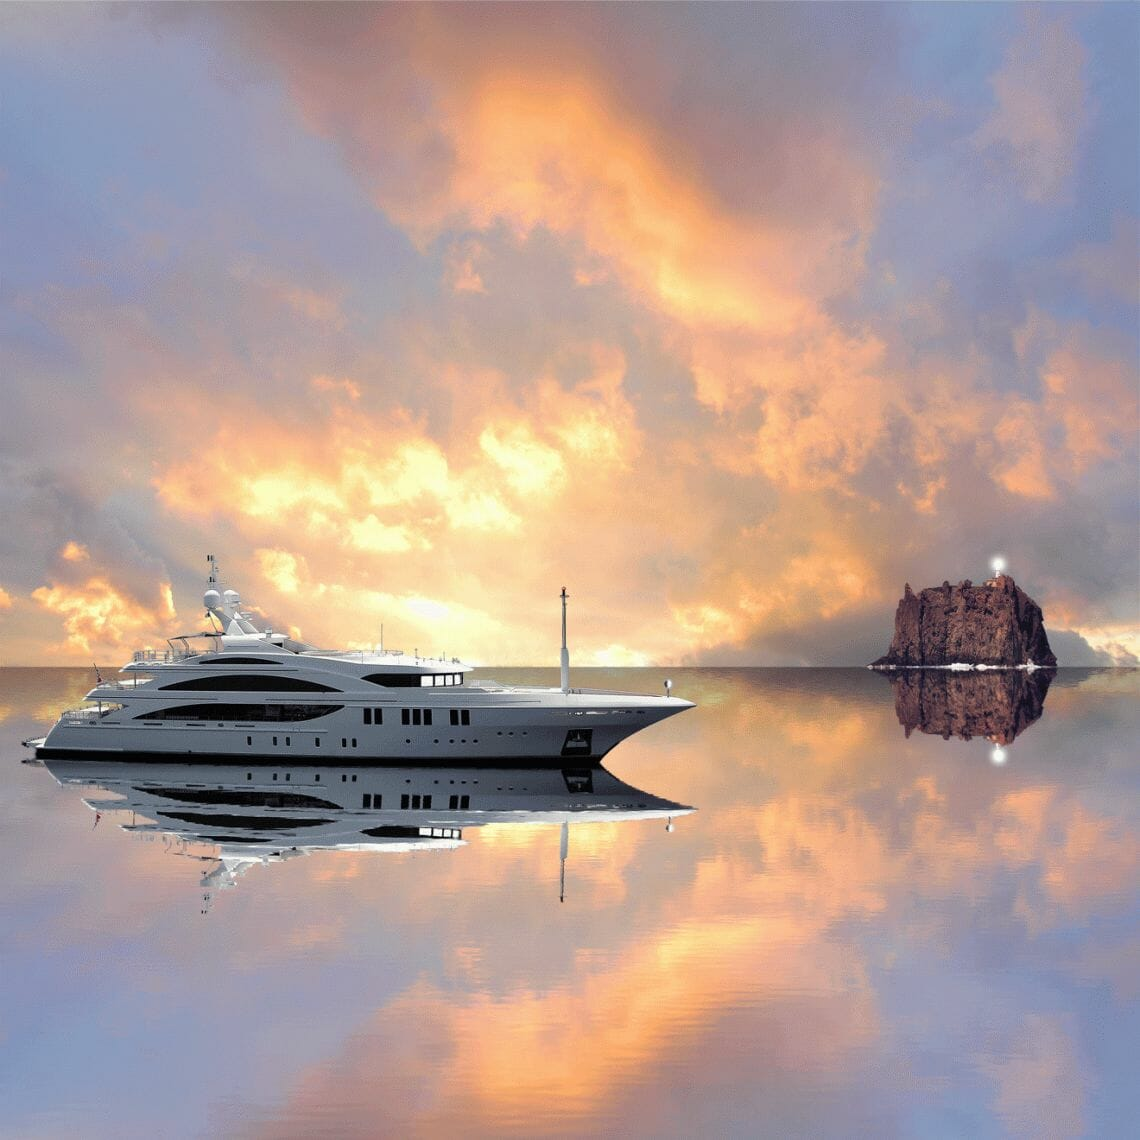 yachting tales Depositphotos 35148535 xl 2015 Discover: Yachting Tales - Experiences Beyond the Ordinary - EAT LOVE SAVOR International luxury lifestyle magazine, bookazines & luxury community